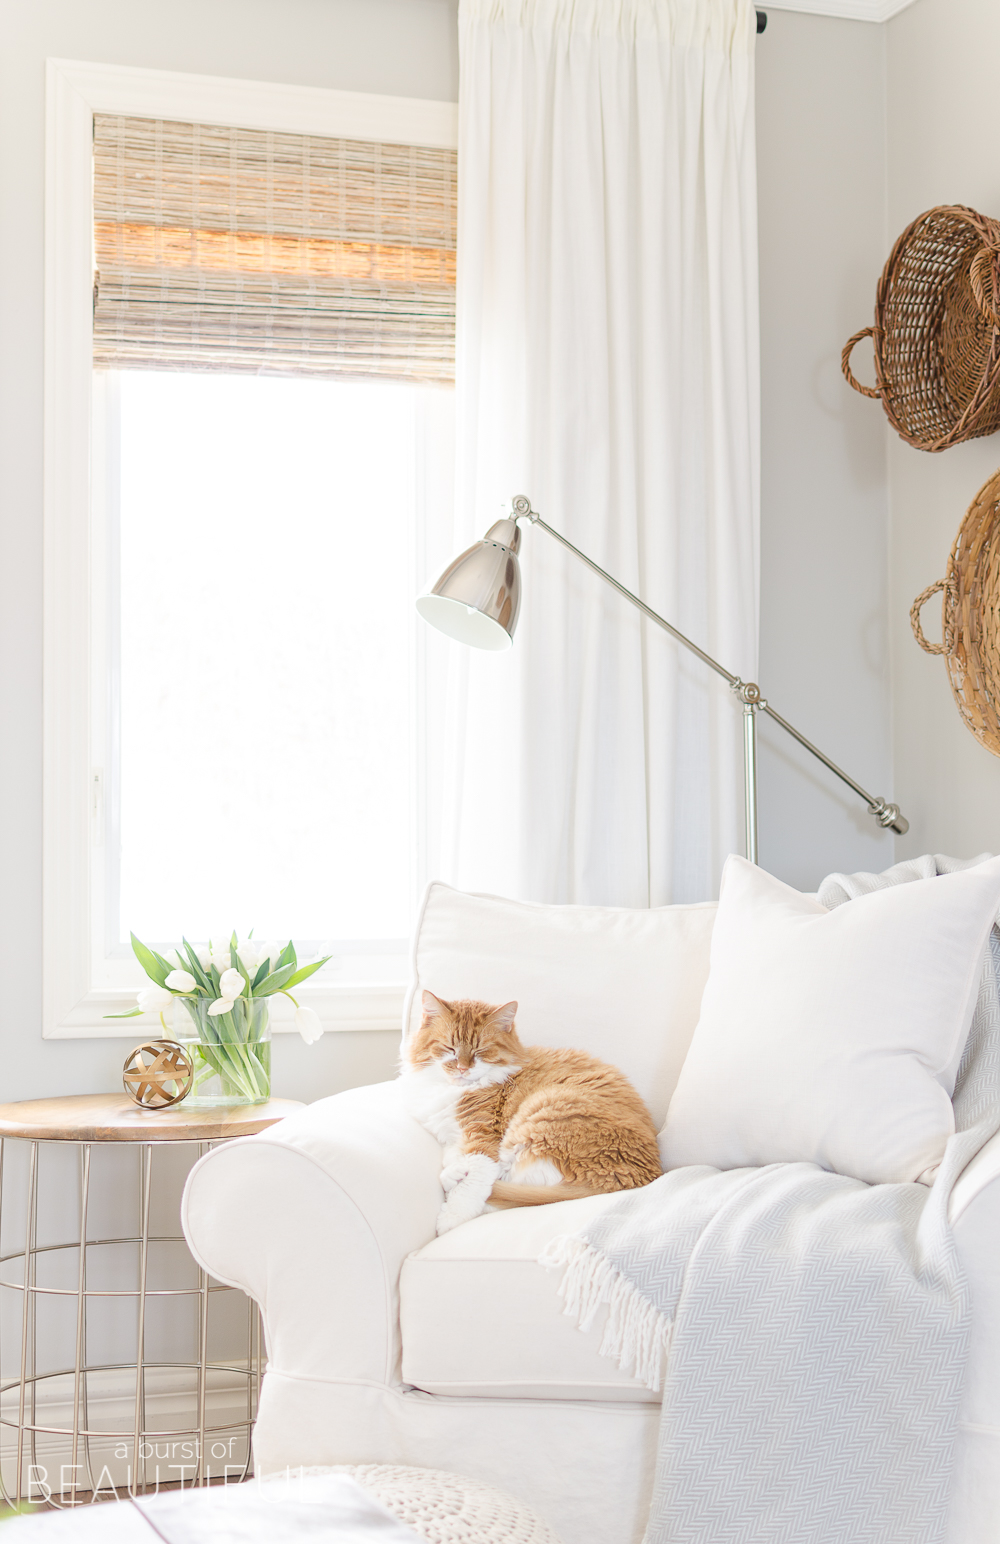 The right window treatments have the ability to elevate any space by adding texture, color, and detail. We are sharing our favorites, woven wood shades, roman shades and drapery panels, and how to get the right look in your home.